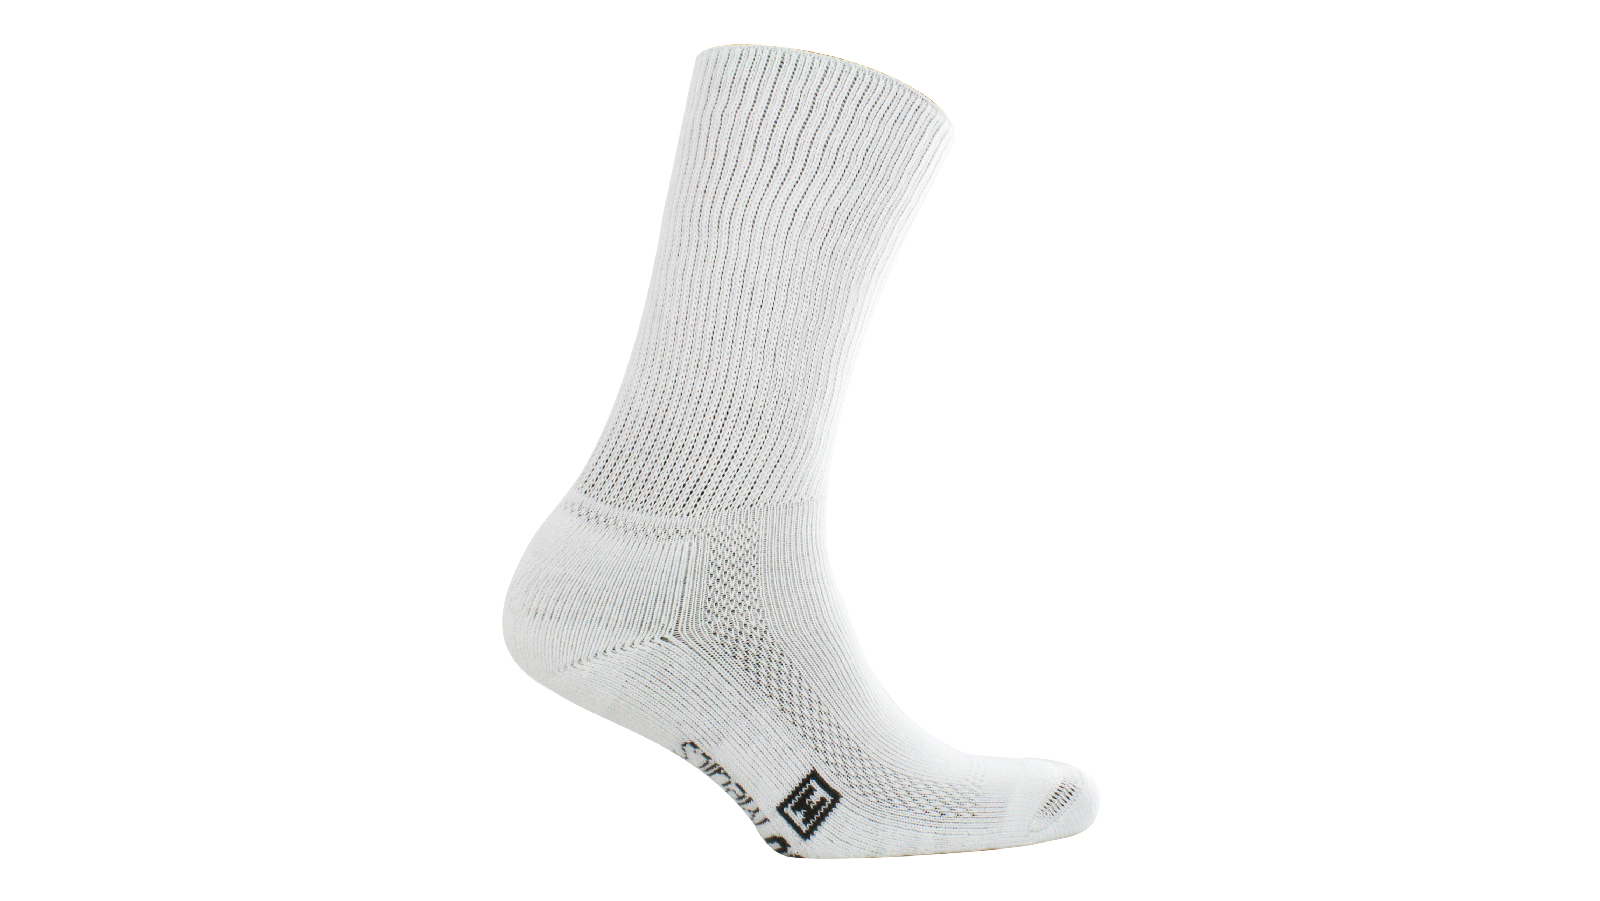 Spenco medics diabetic plus soft rib quarter socks in white